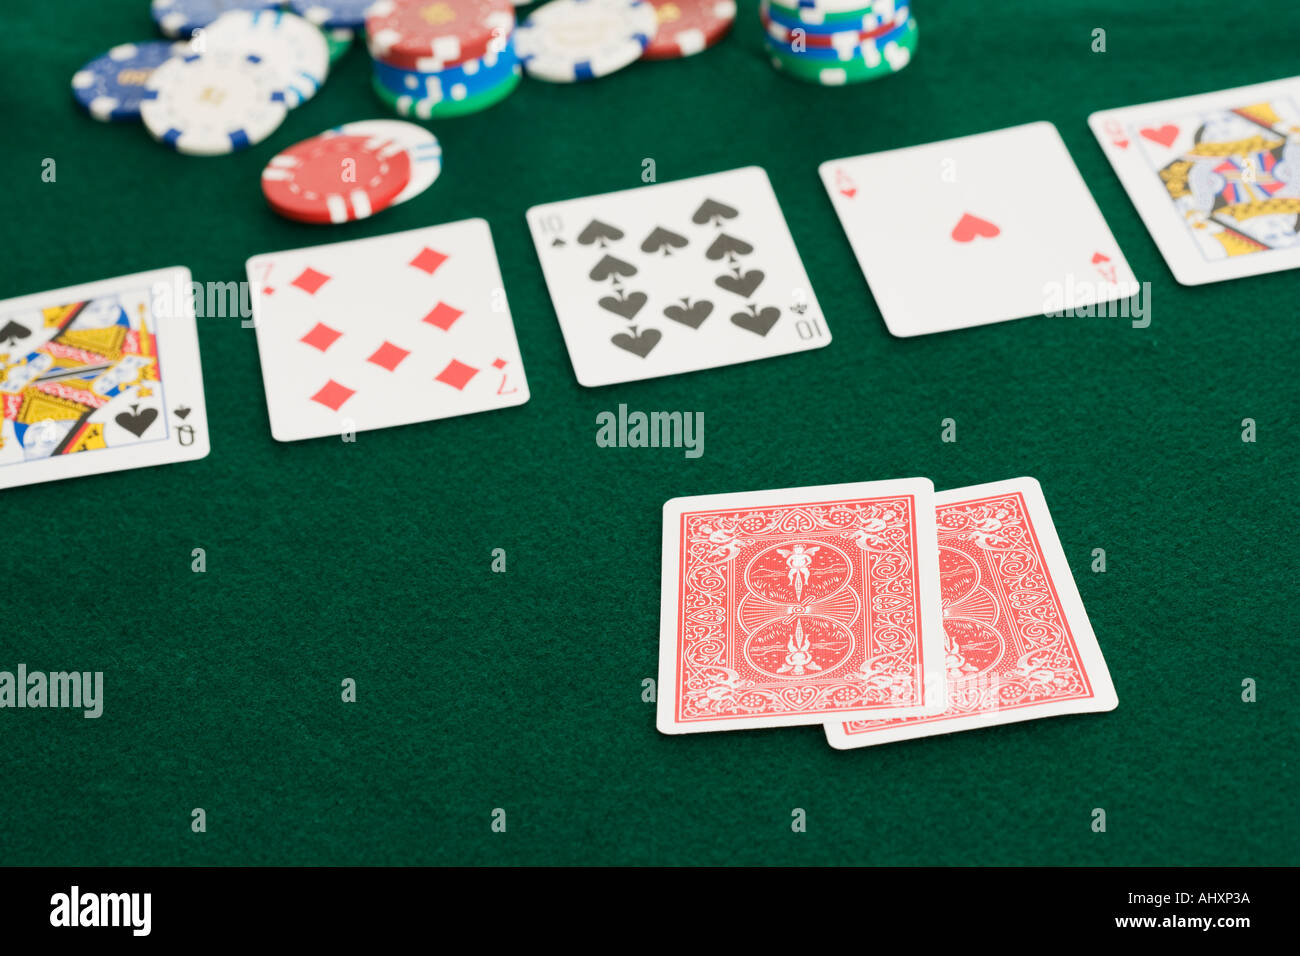 Poker hand and chips - Stock Image